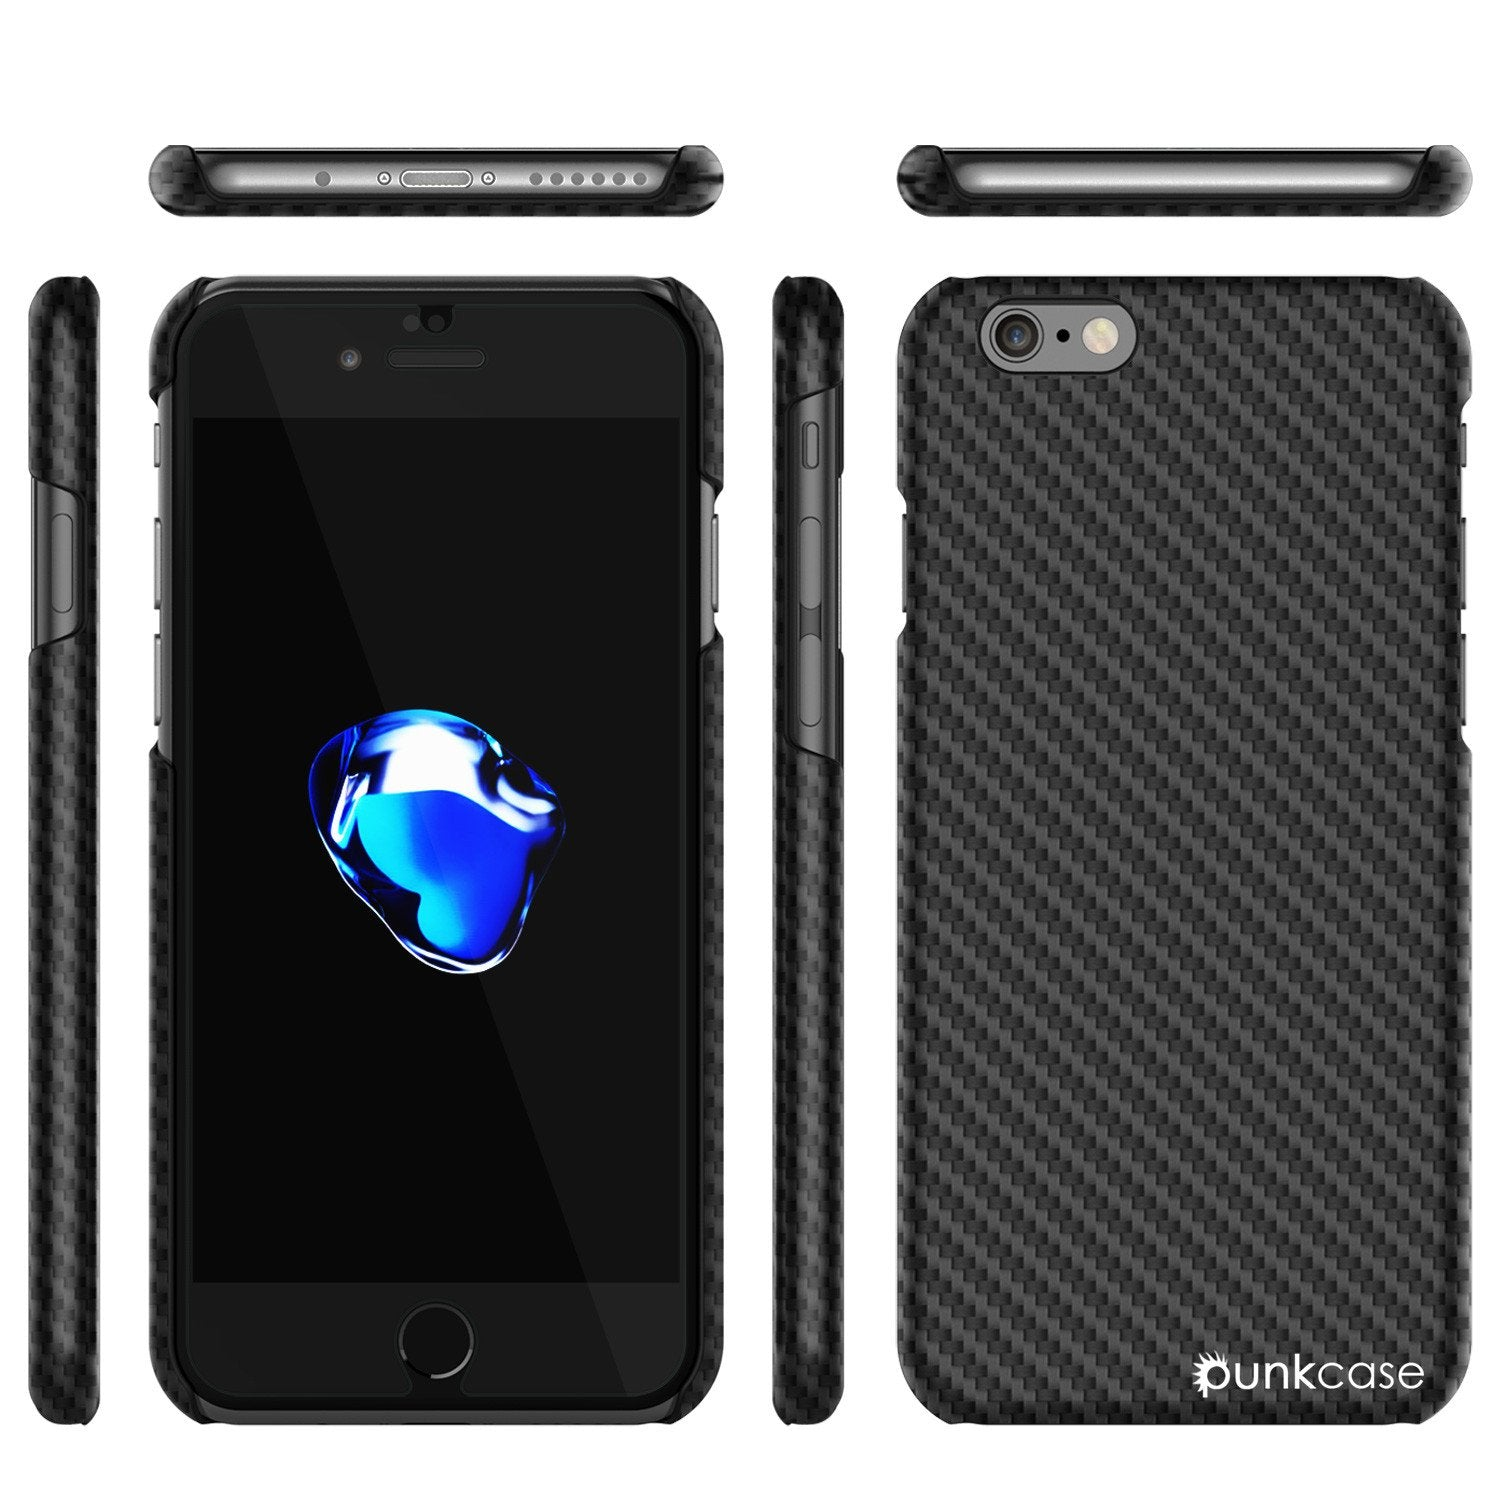 iPhone 7 Case, Punkcase CarbonShield Jet Black with 0.3mm Tempered Glass - PunkCase NZ